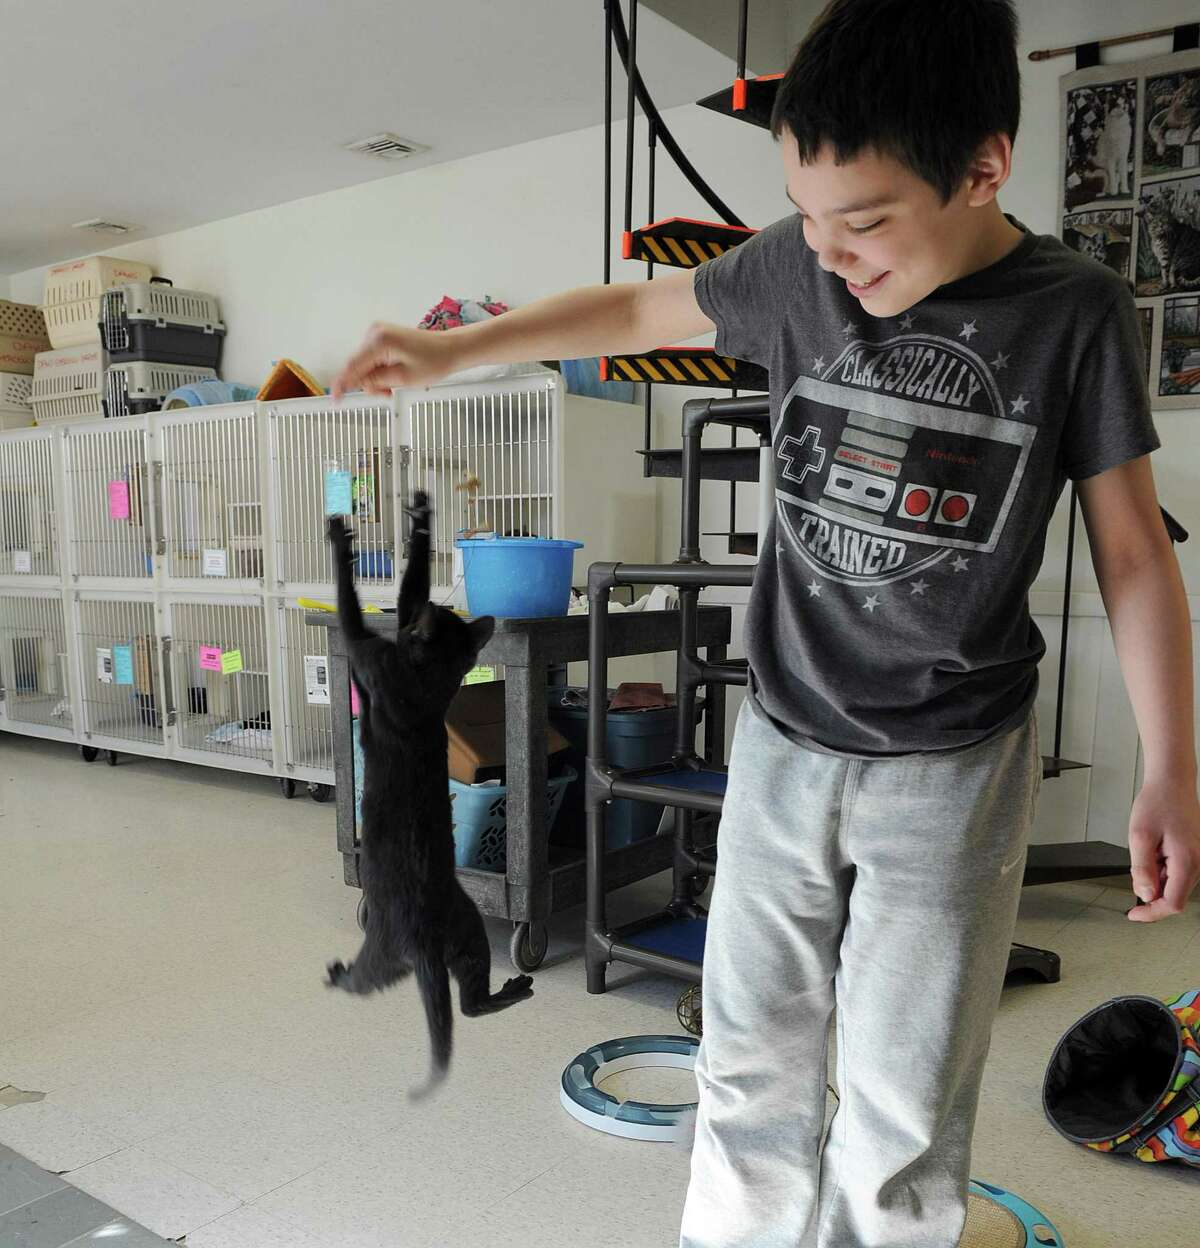 Tyler Grace, 11, plays with a kitten at Danbury Animal Welfare, Monday, March 6, 2017. Fairfield County Giving Day is Thursday, March 9 and the Danbury Animal Welfare Society is one of the participants.